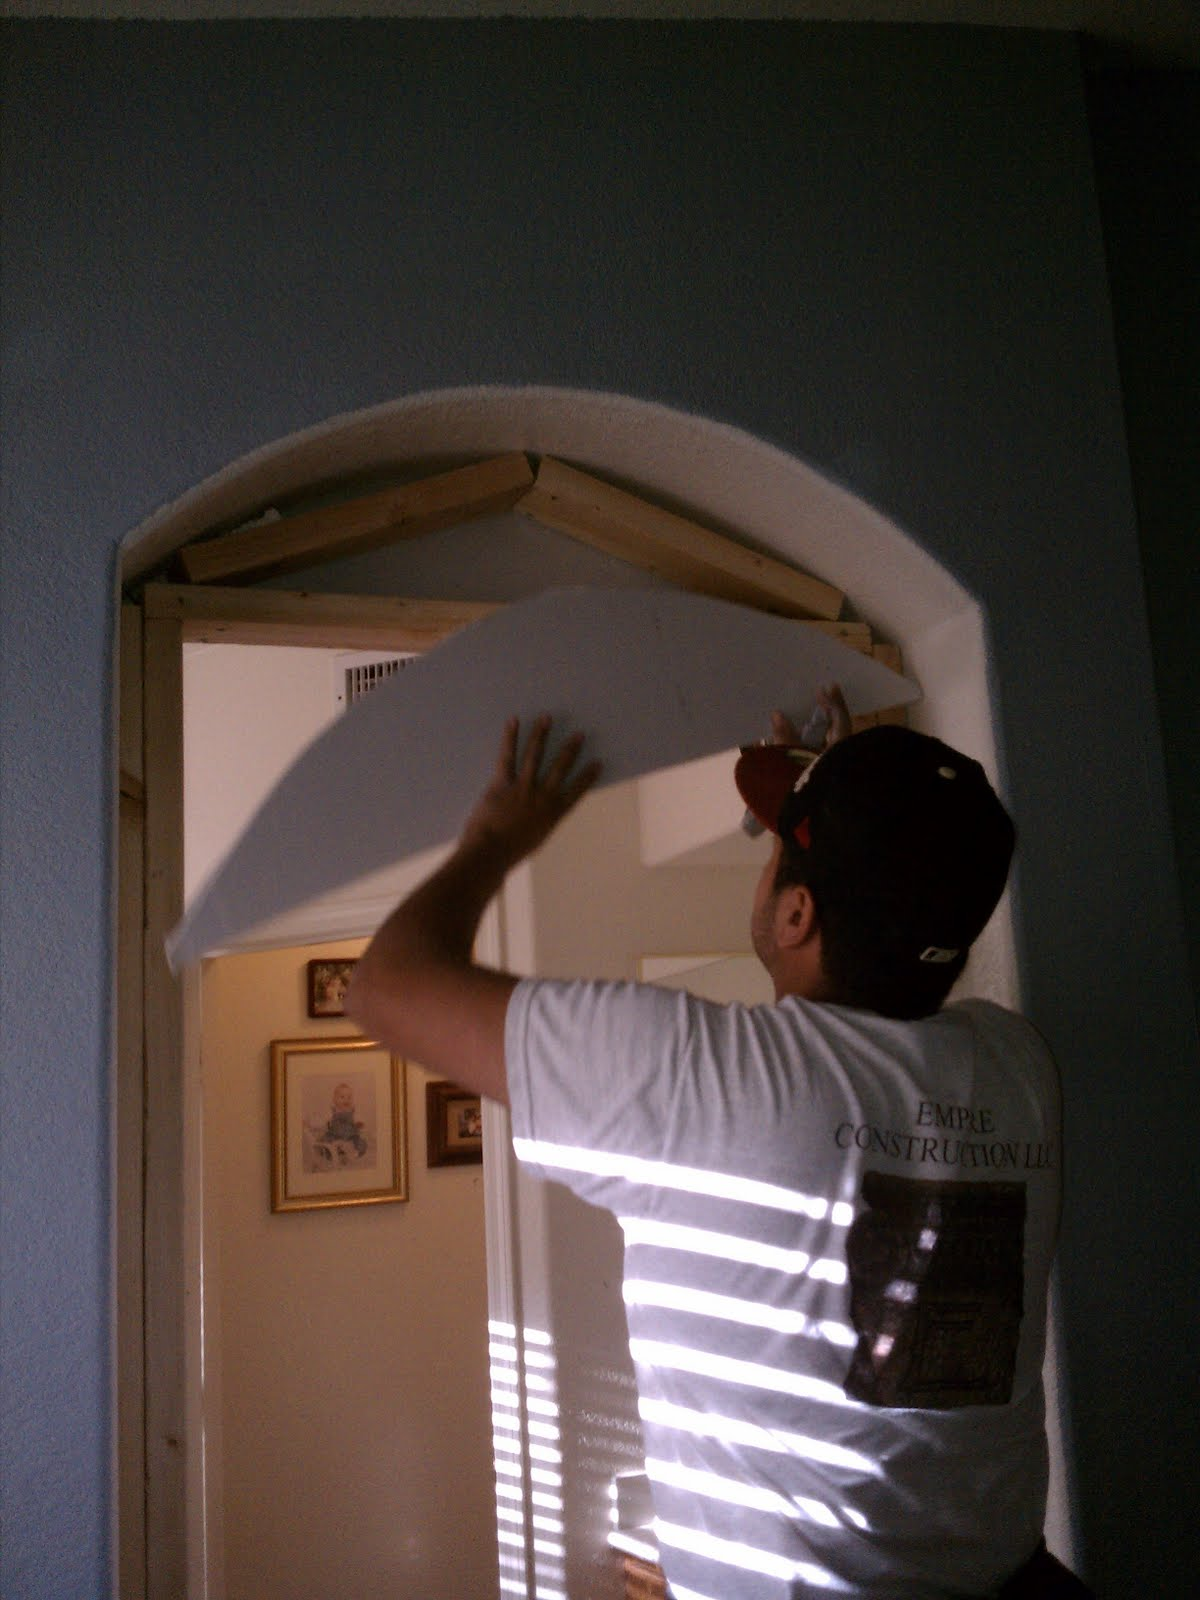 Merveilleux Cutting The Top Arch Semi Circle Crescent Out Of Drywall. Tool: Razor Knife.